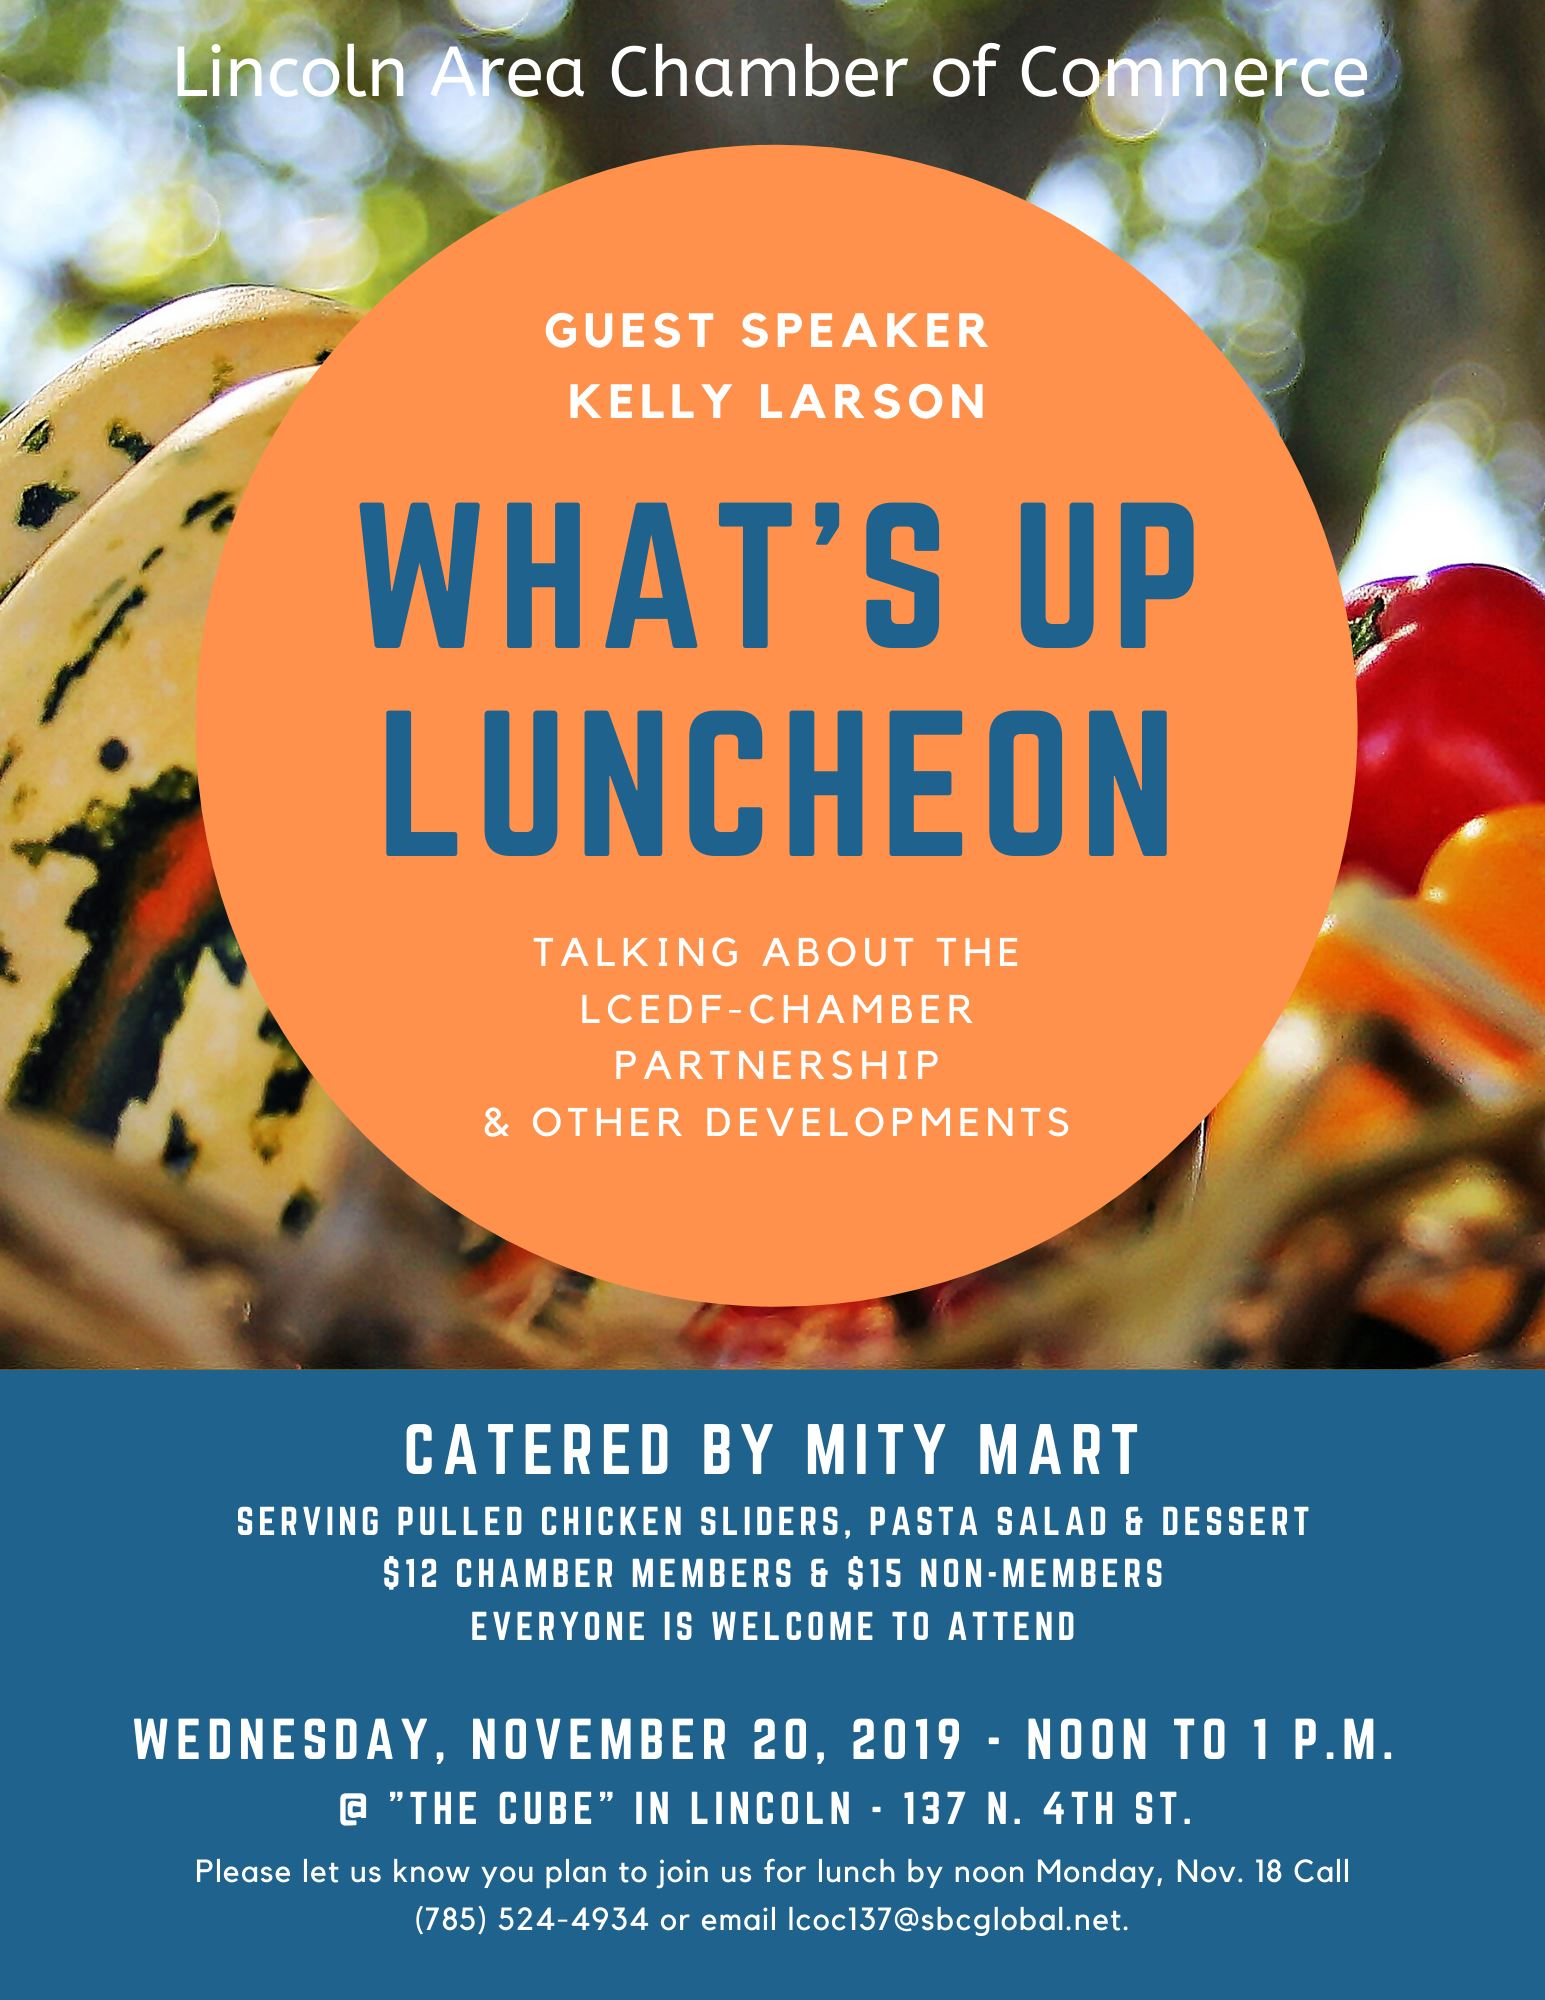 Lincoln Chamber What's Up Luncheon invitation